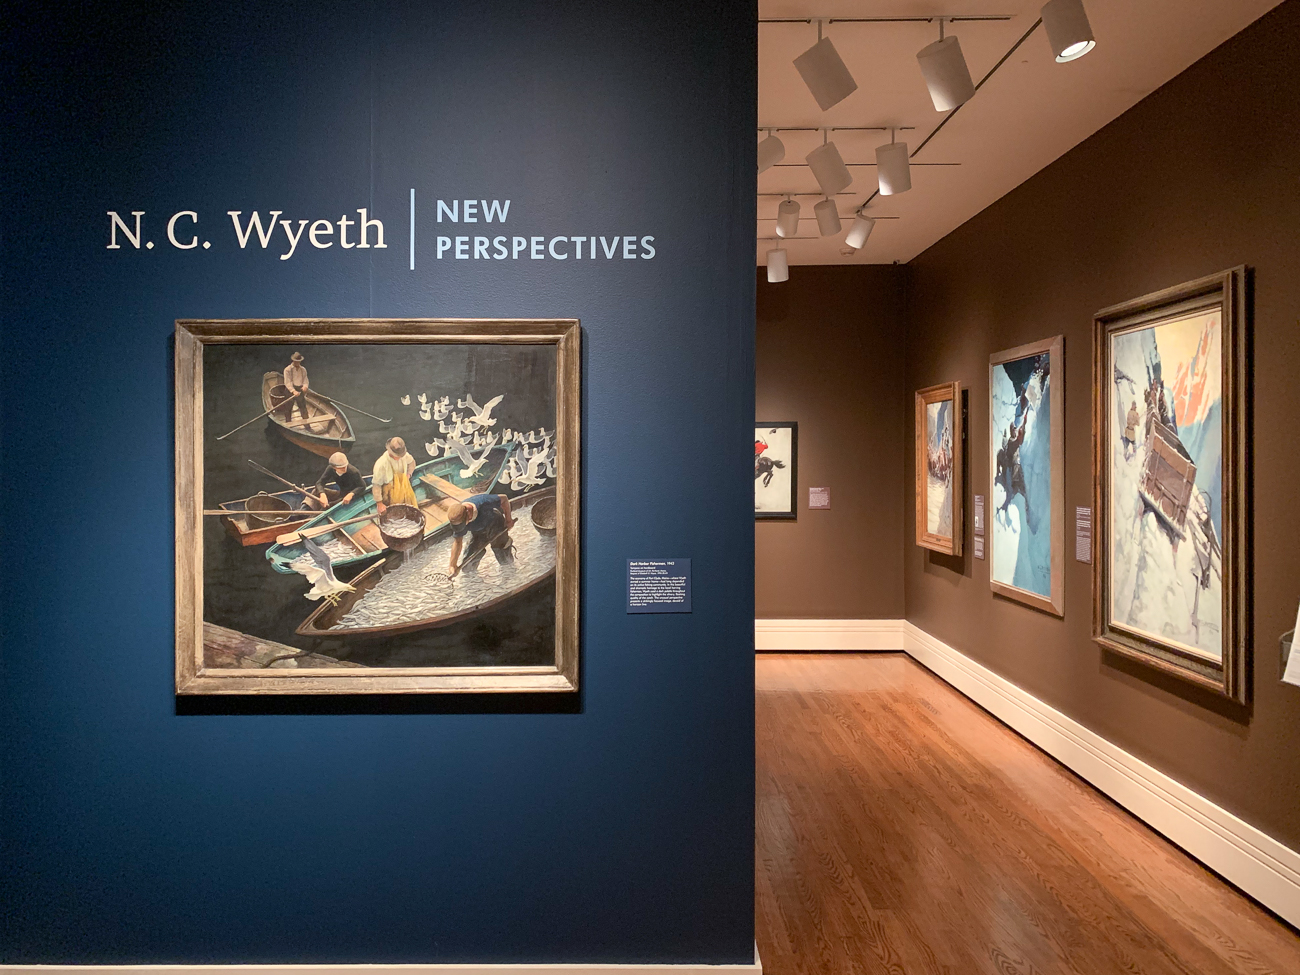 From February 8 to May 3, 2020, N.C. Wyeth: New Perspectives will be on display at the Taft Museum in their Fifth Third Gallery. Wyeth (1882-1945), a renowned painter and illustrator, is known for his work on Treasure Island, The Last of the Mohicans, and several other popular works during his lifetime. Balanced on a tightrope between being a commercial illustrator and a fine artist, Wyeth's pieces at the Taft highlight his versatility throughout his lifetime, which is loosely organized chronologically. / Image: Phil Armstrong, Cincinnati Refined // Published: 2.9.20